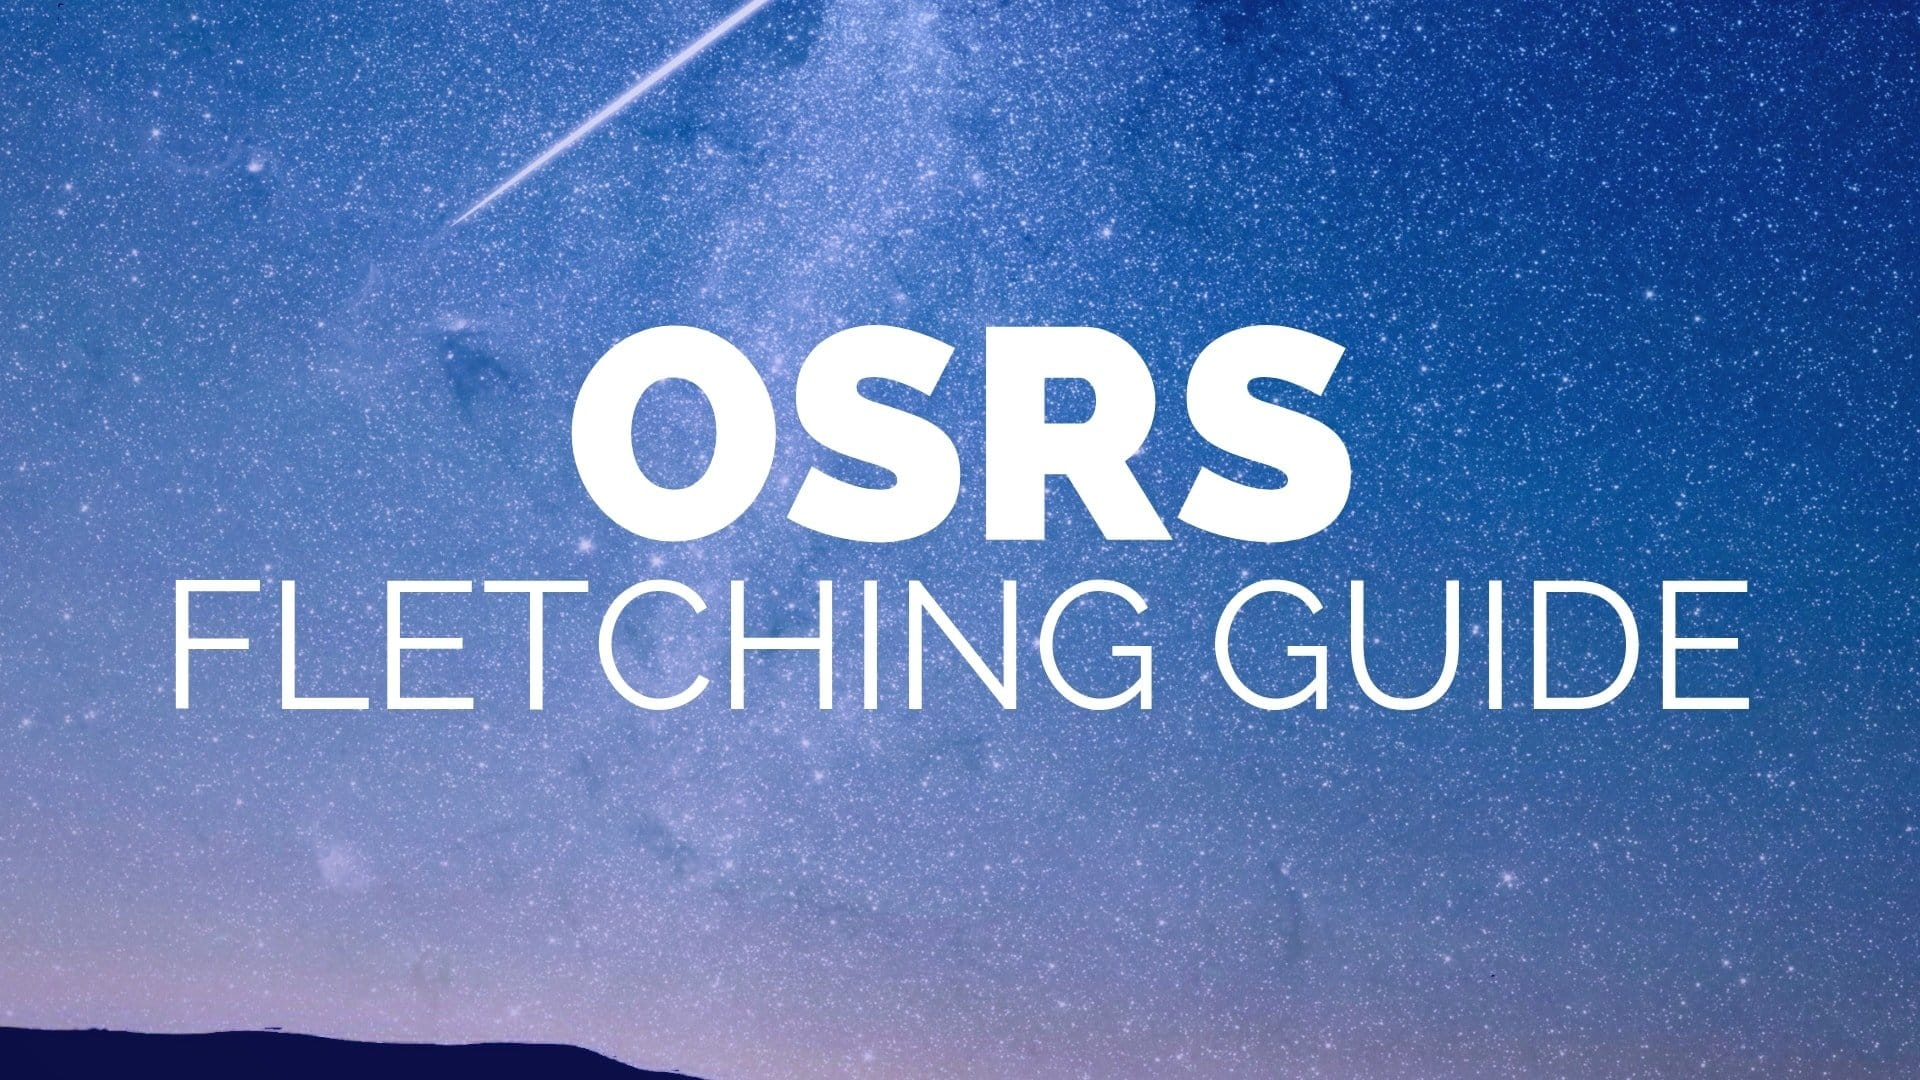 Fletching Guide OSRS